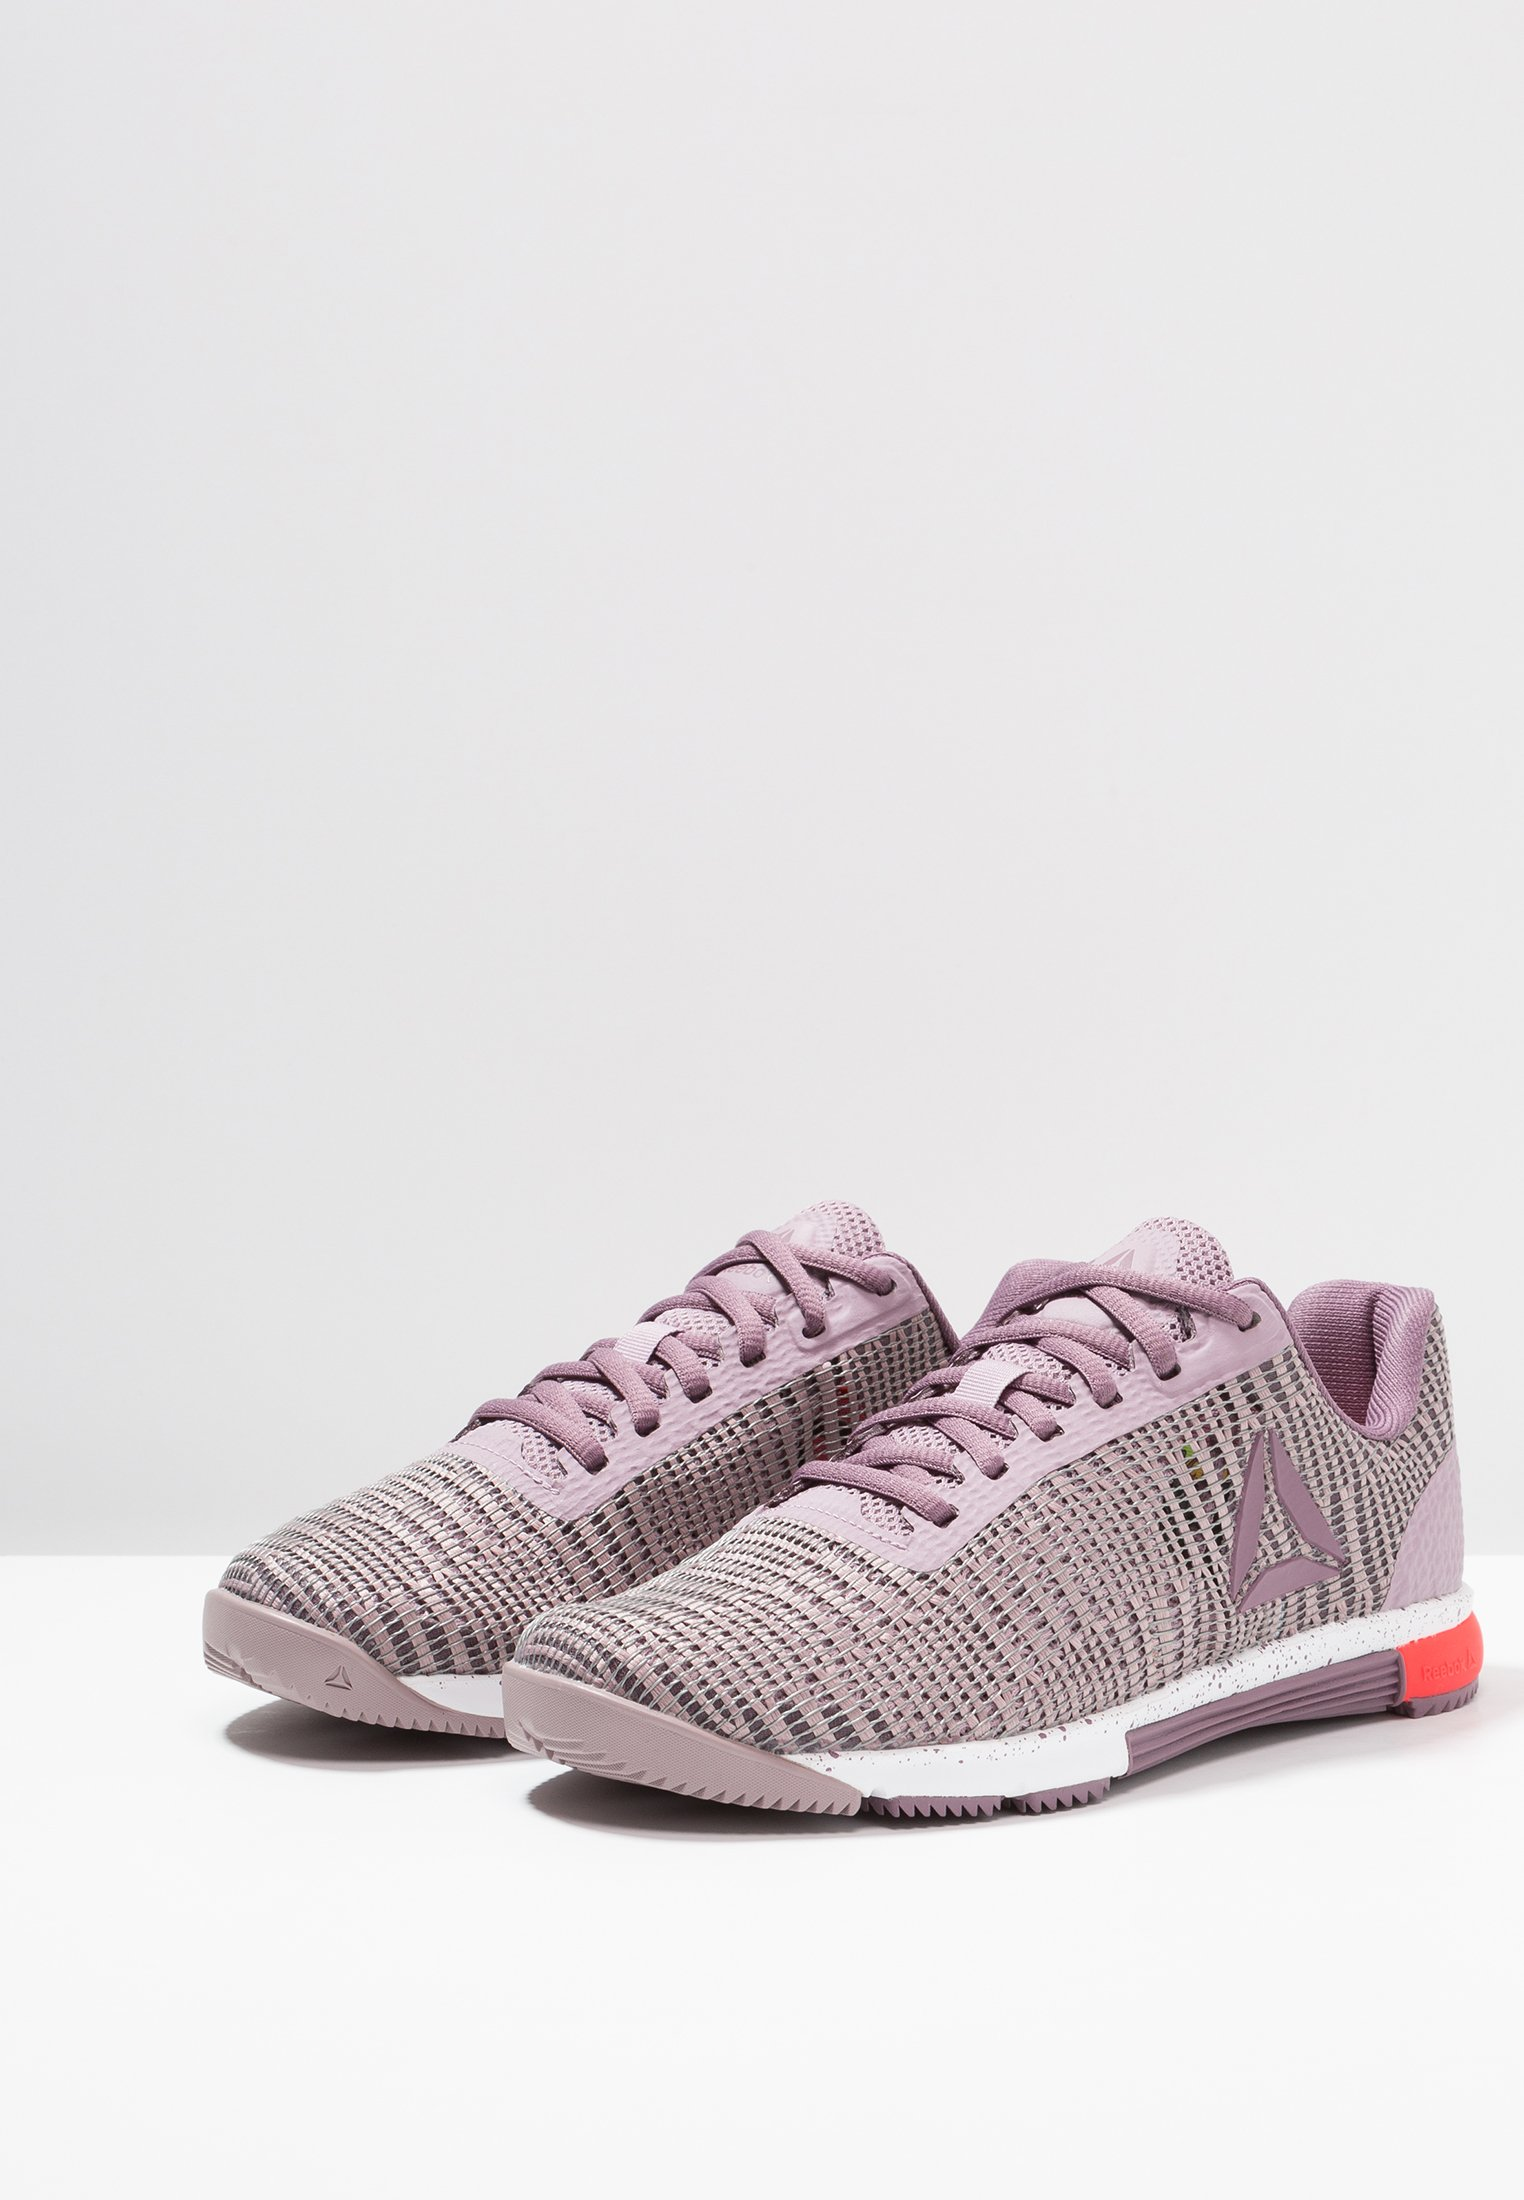 orchid white D'entraînement FlexweaveChaussures Reebok Et Tr Lilac Speed De red Fitness srthQd